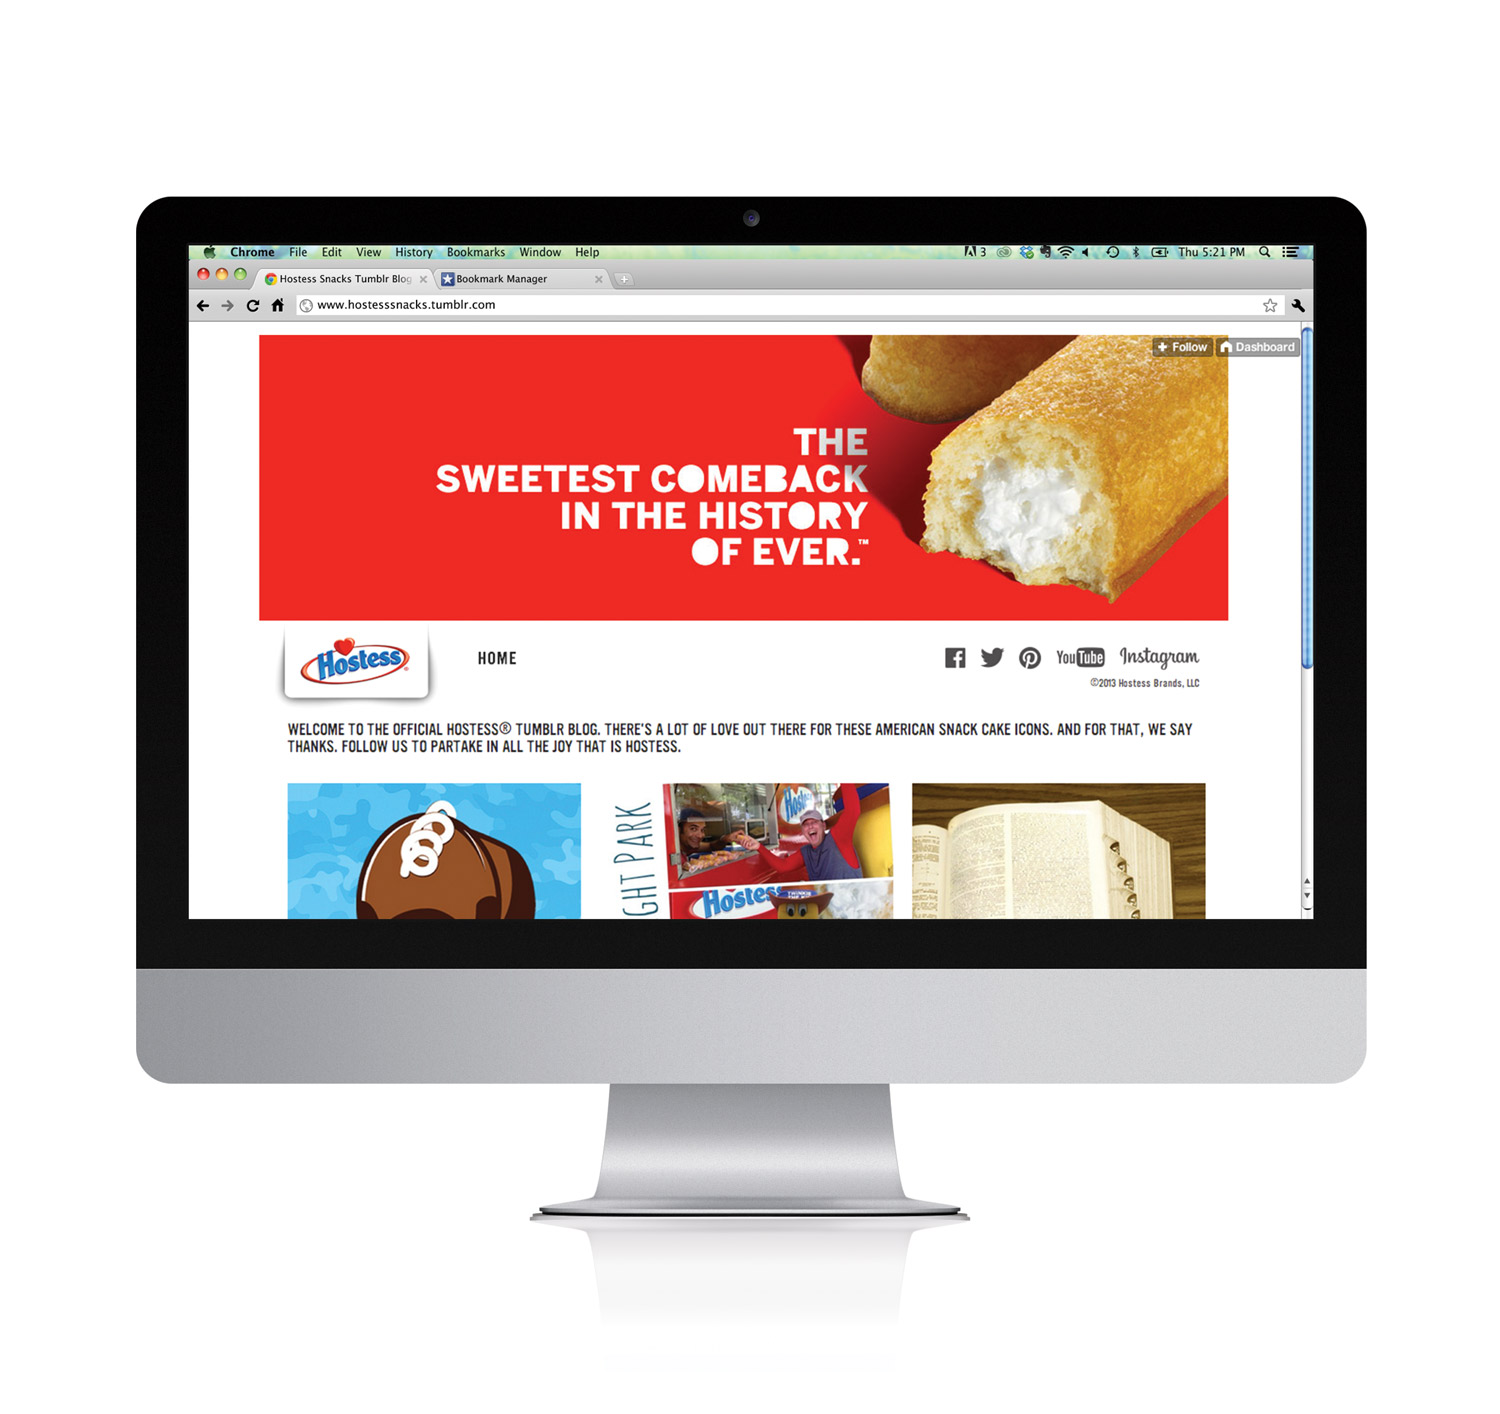 Hostess Brands Tumblr Blog